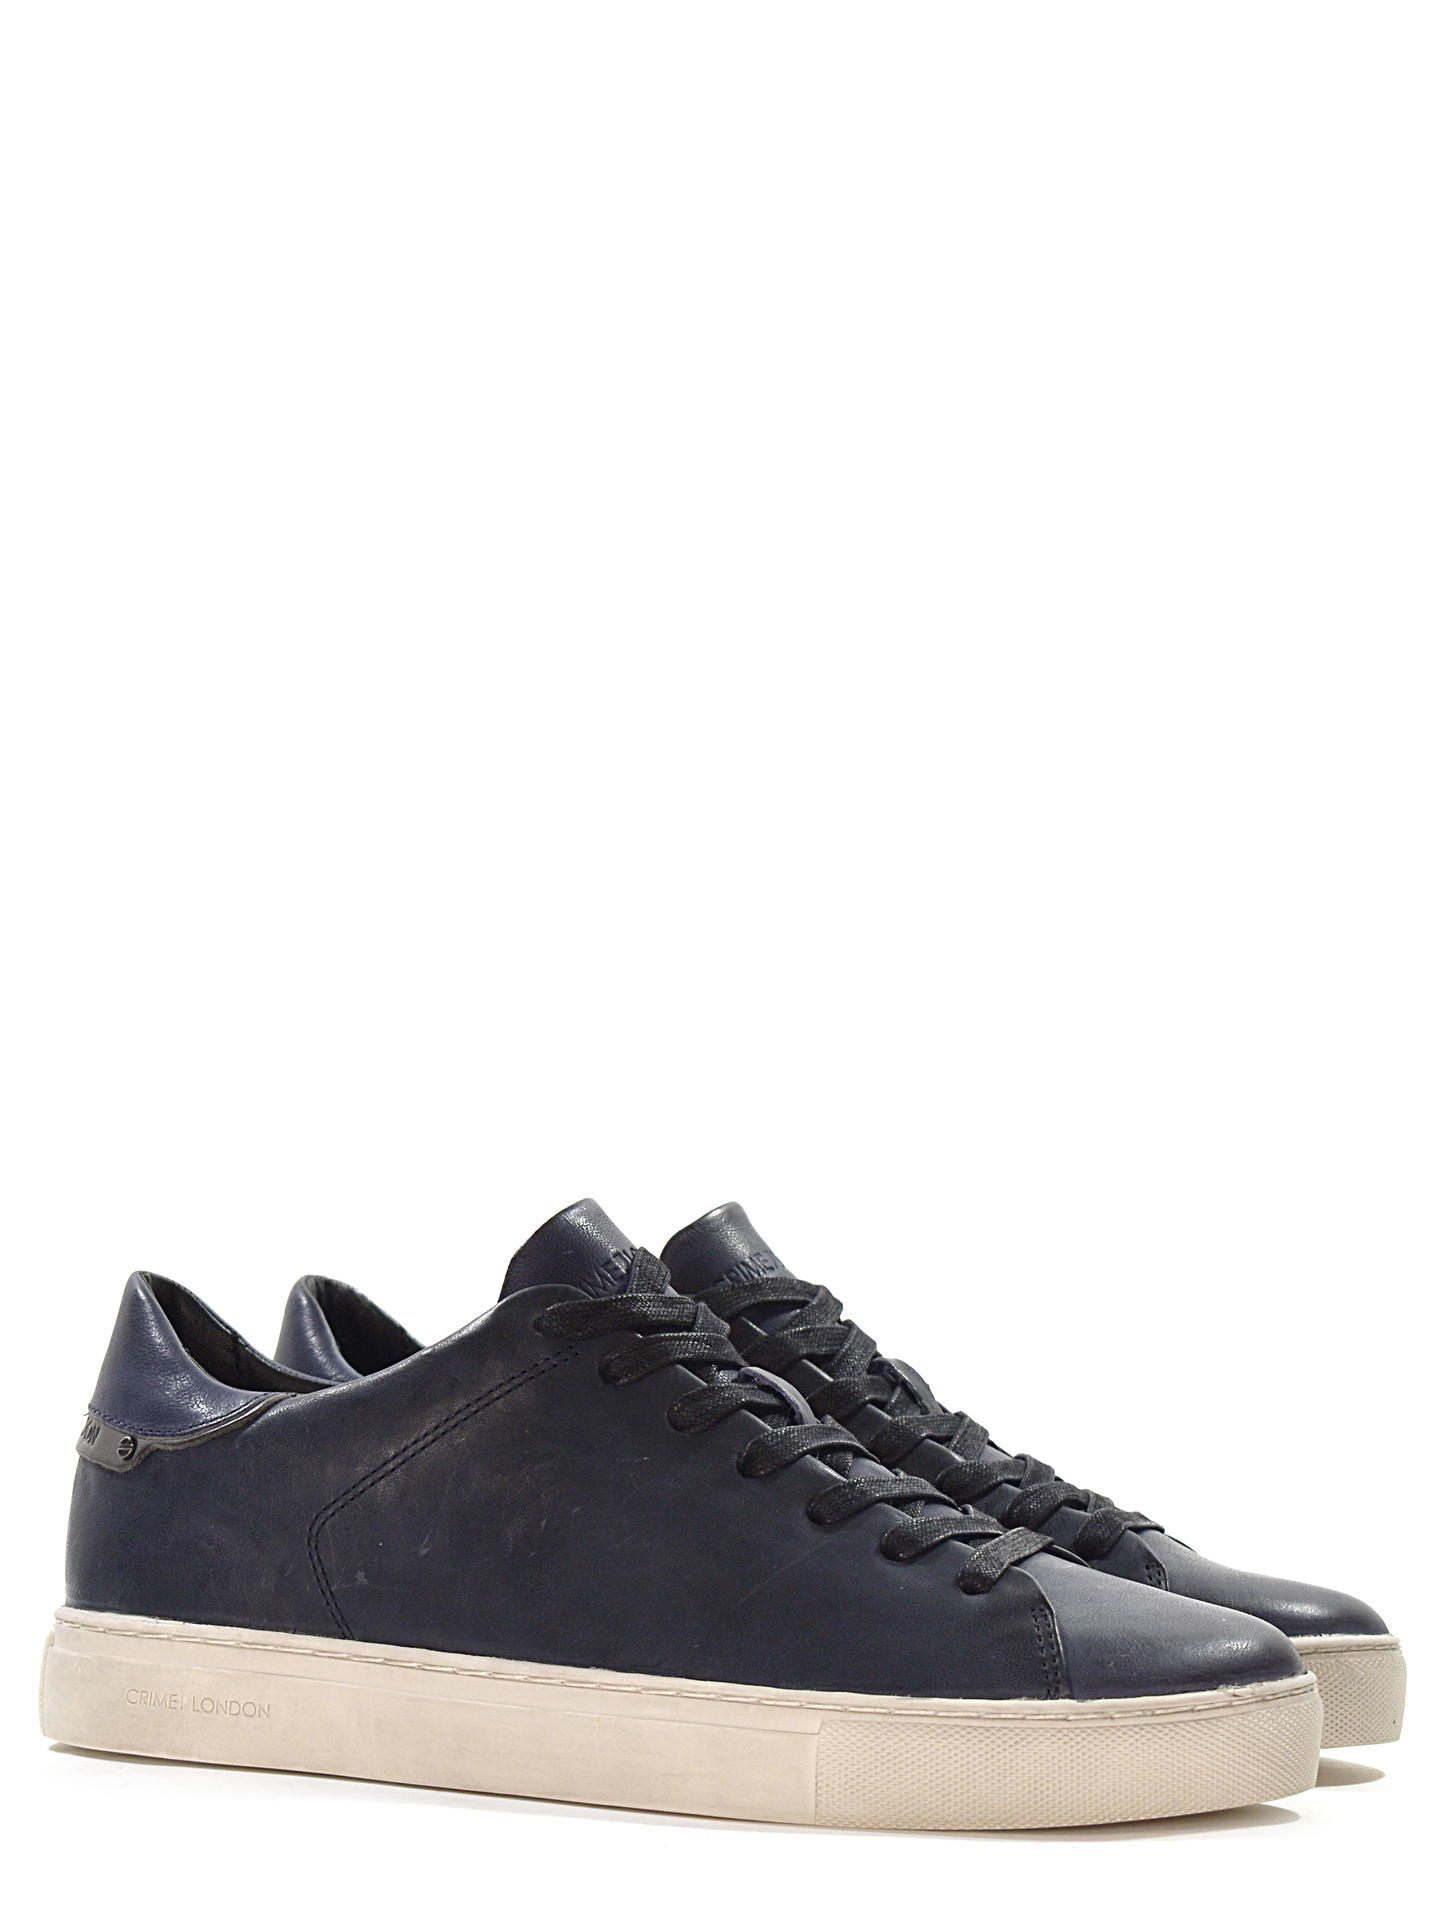 SNEAKERS CRIME LONDON 11307 BLUE